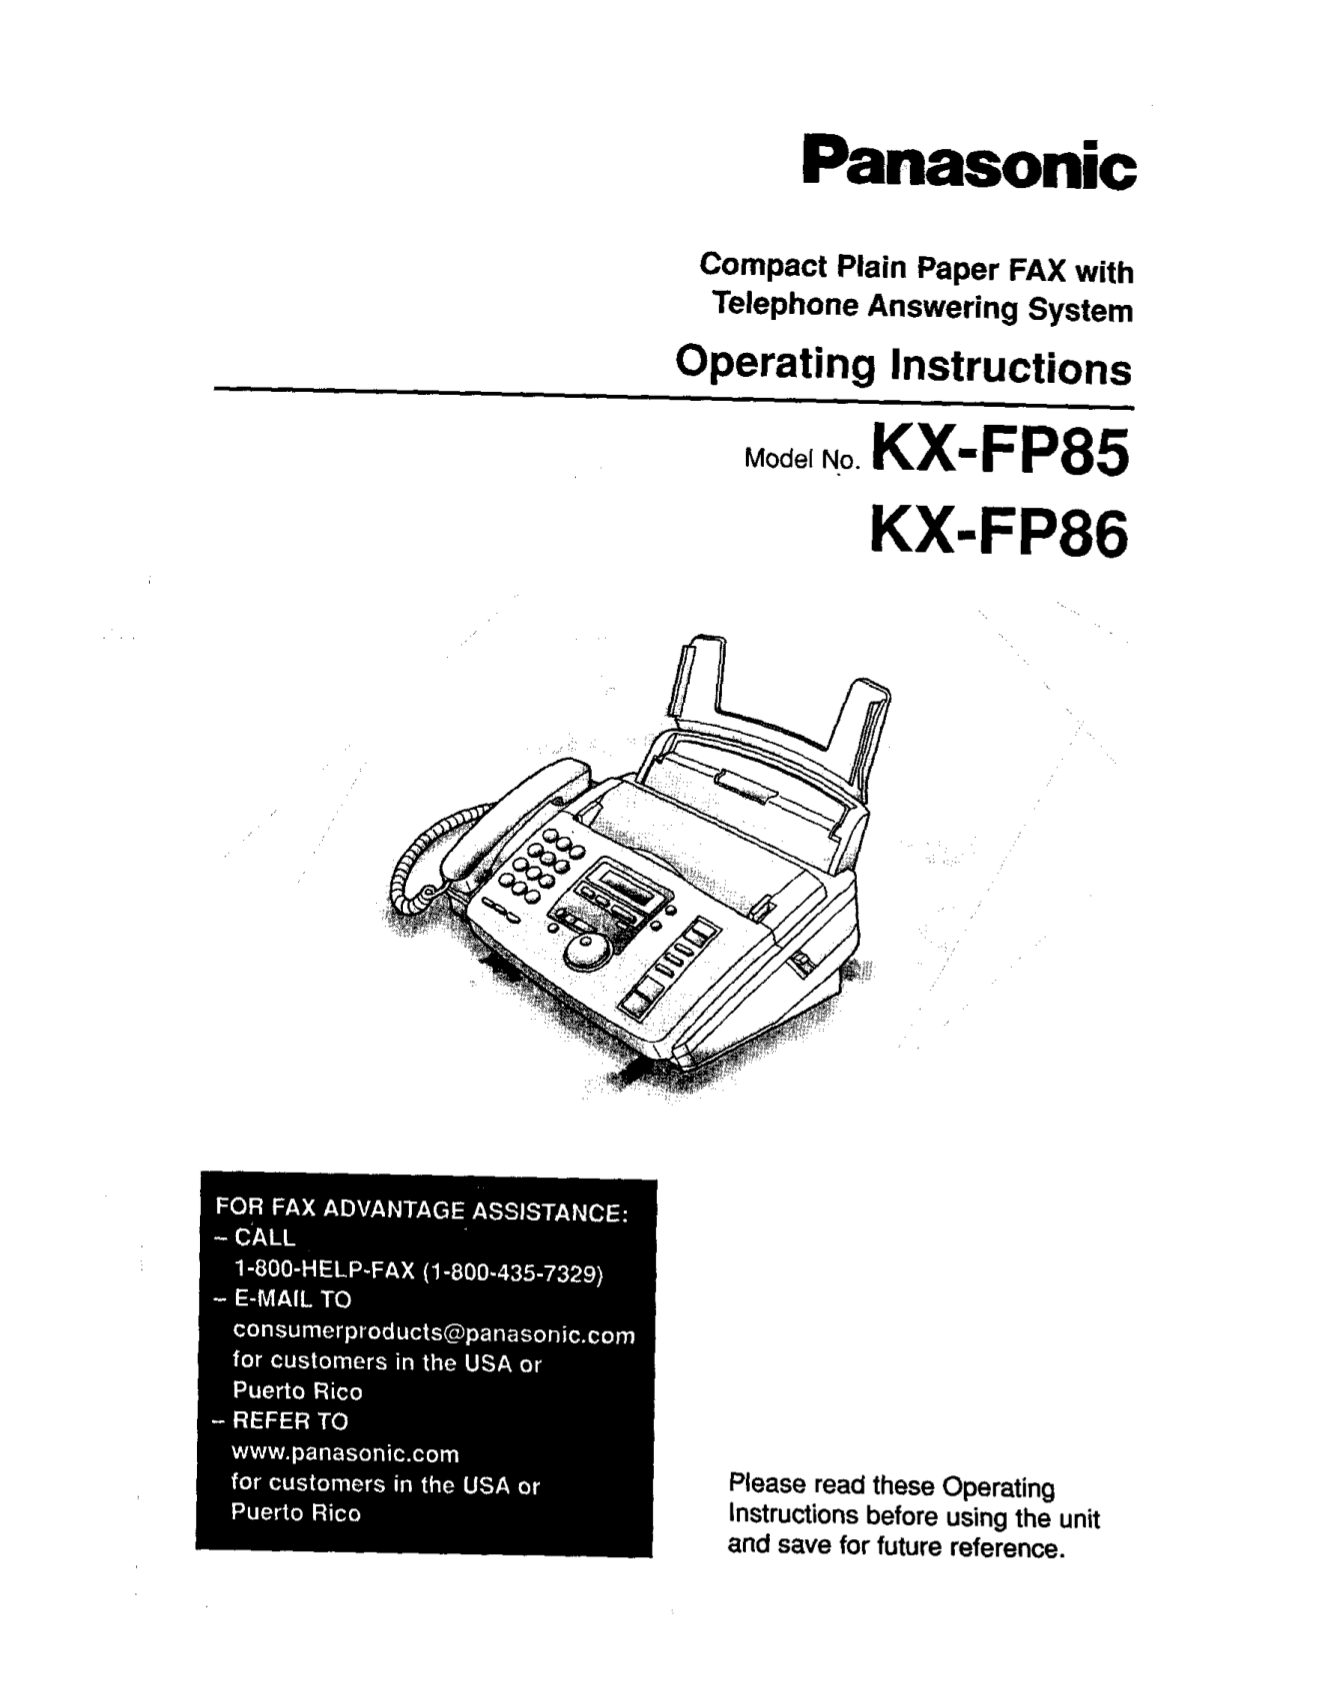 Download free pdf for Panasonic KX-FP85 Fax Machine manual